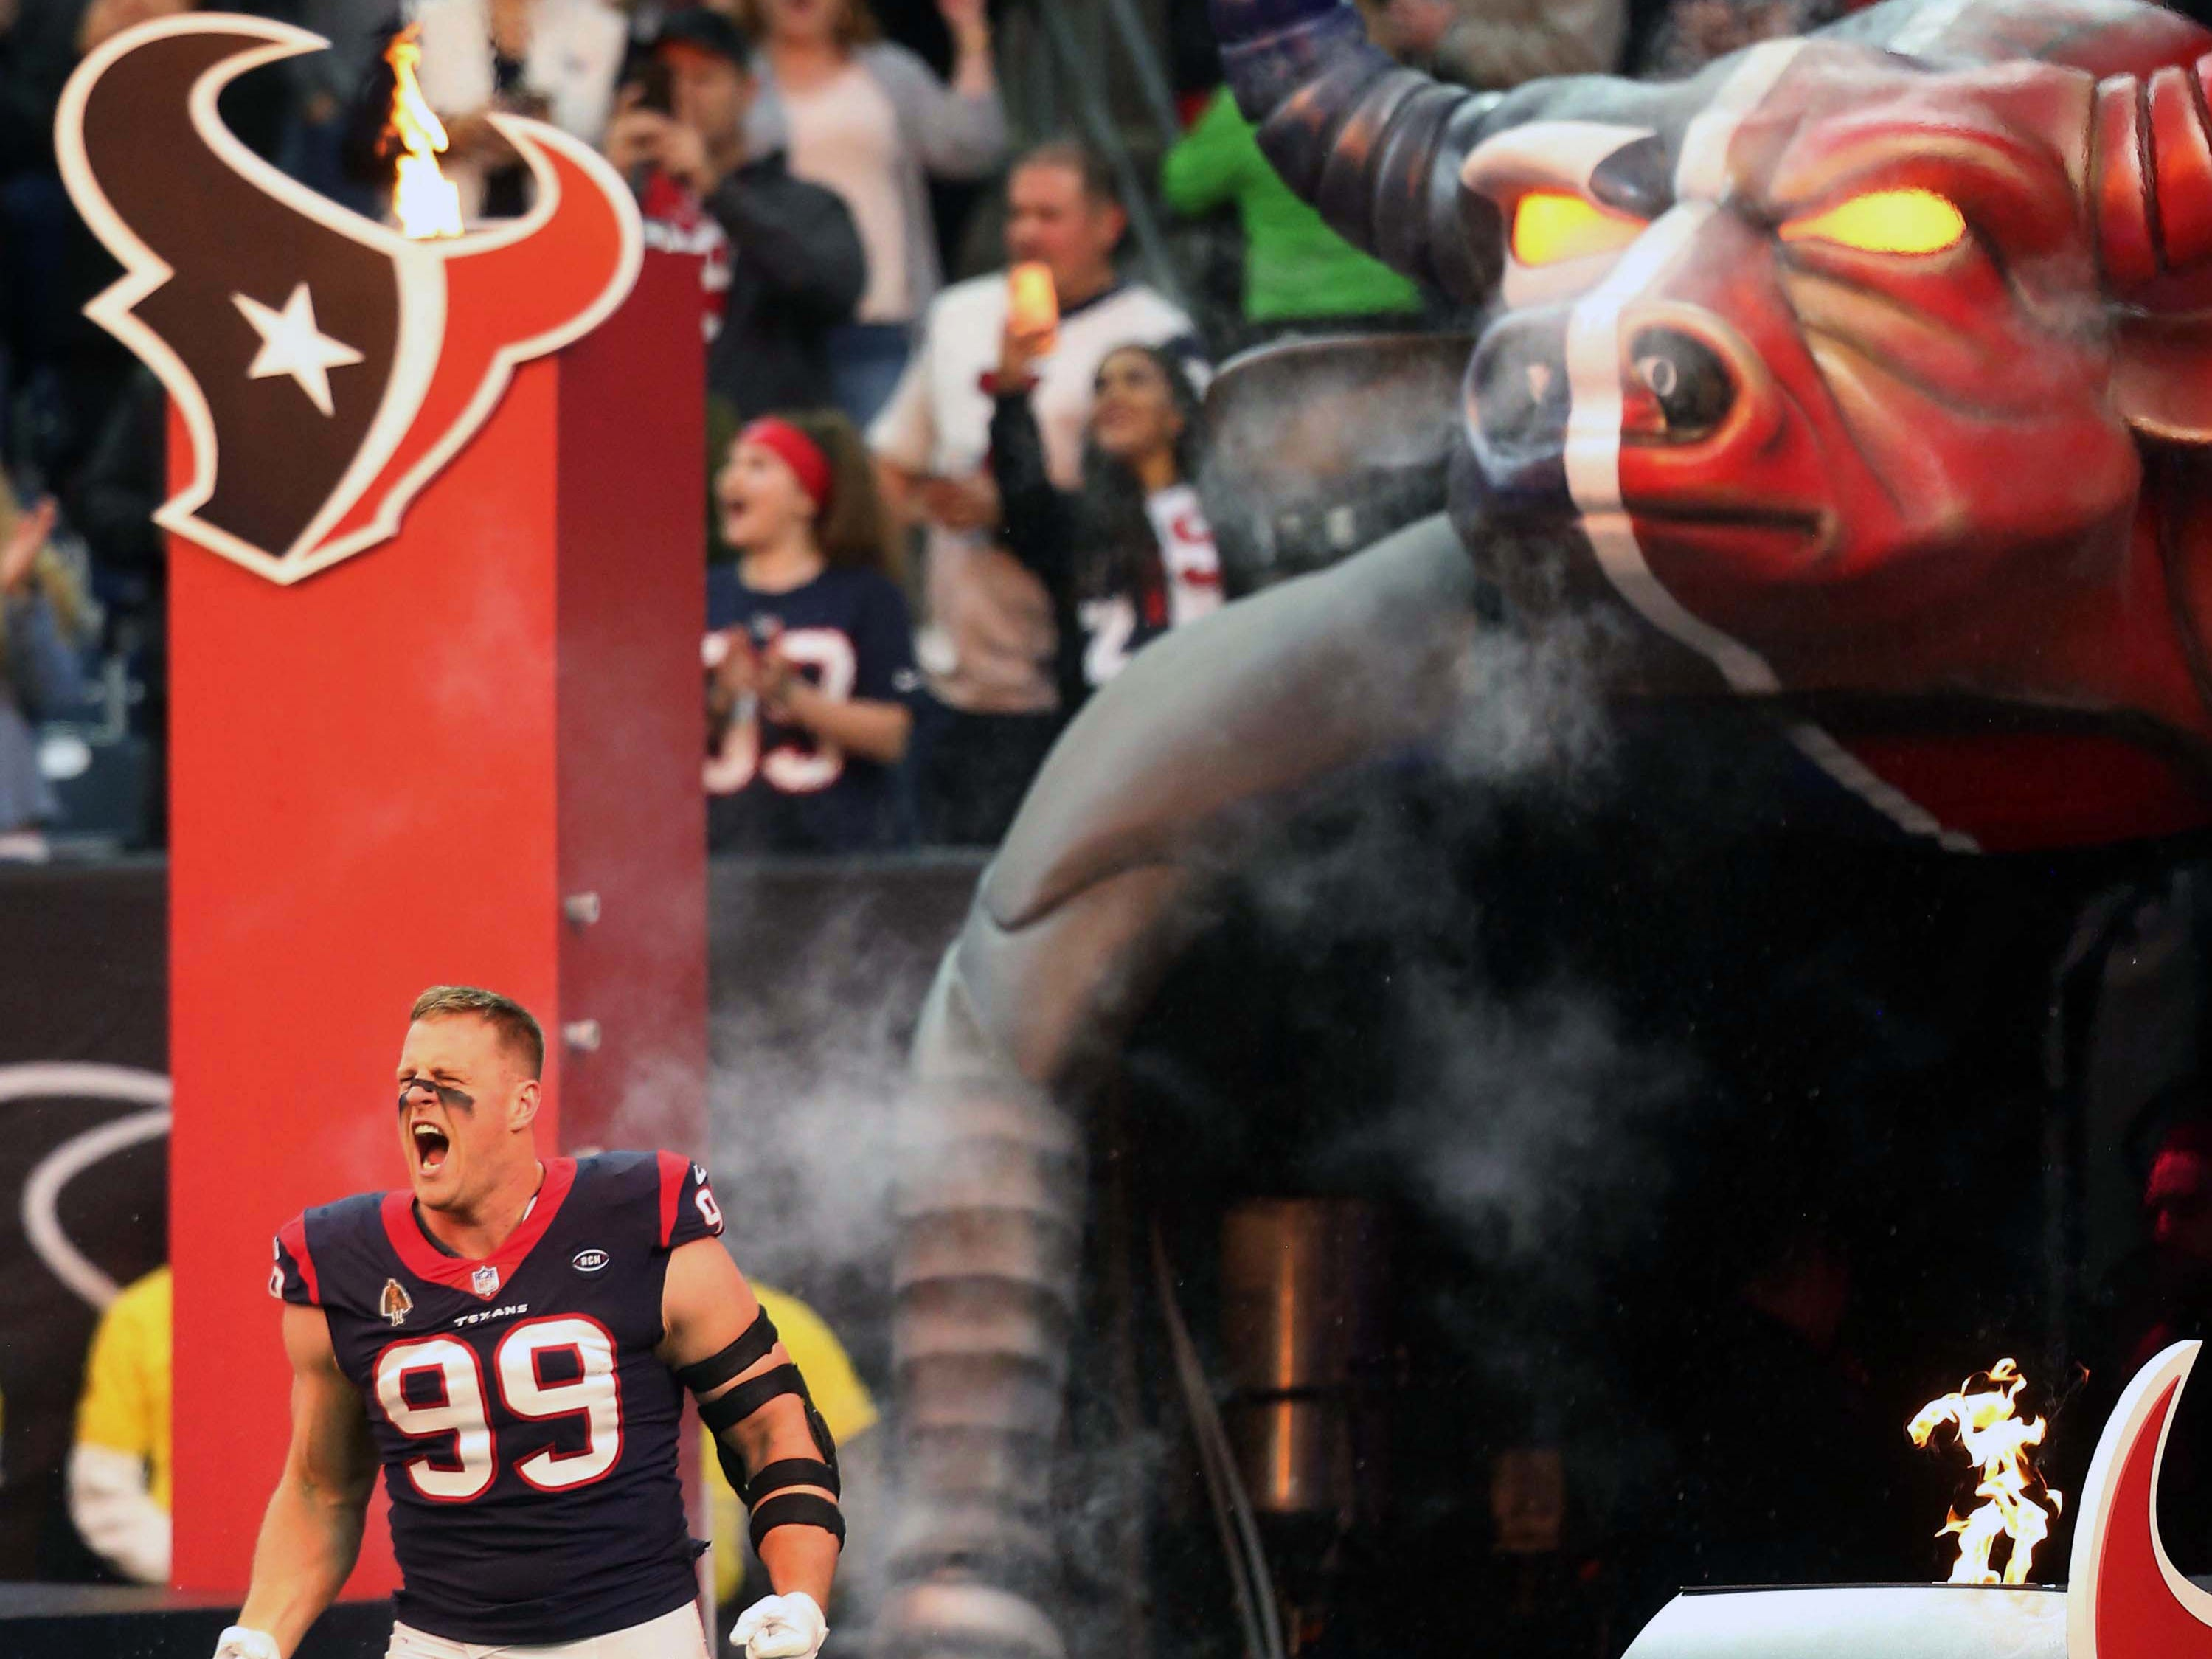 Houston Texans defensive end J.J. Watt is introduced before playing against the Jacksonville Jaguars at NRG Stadium.